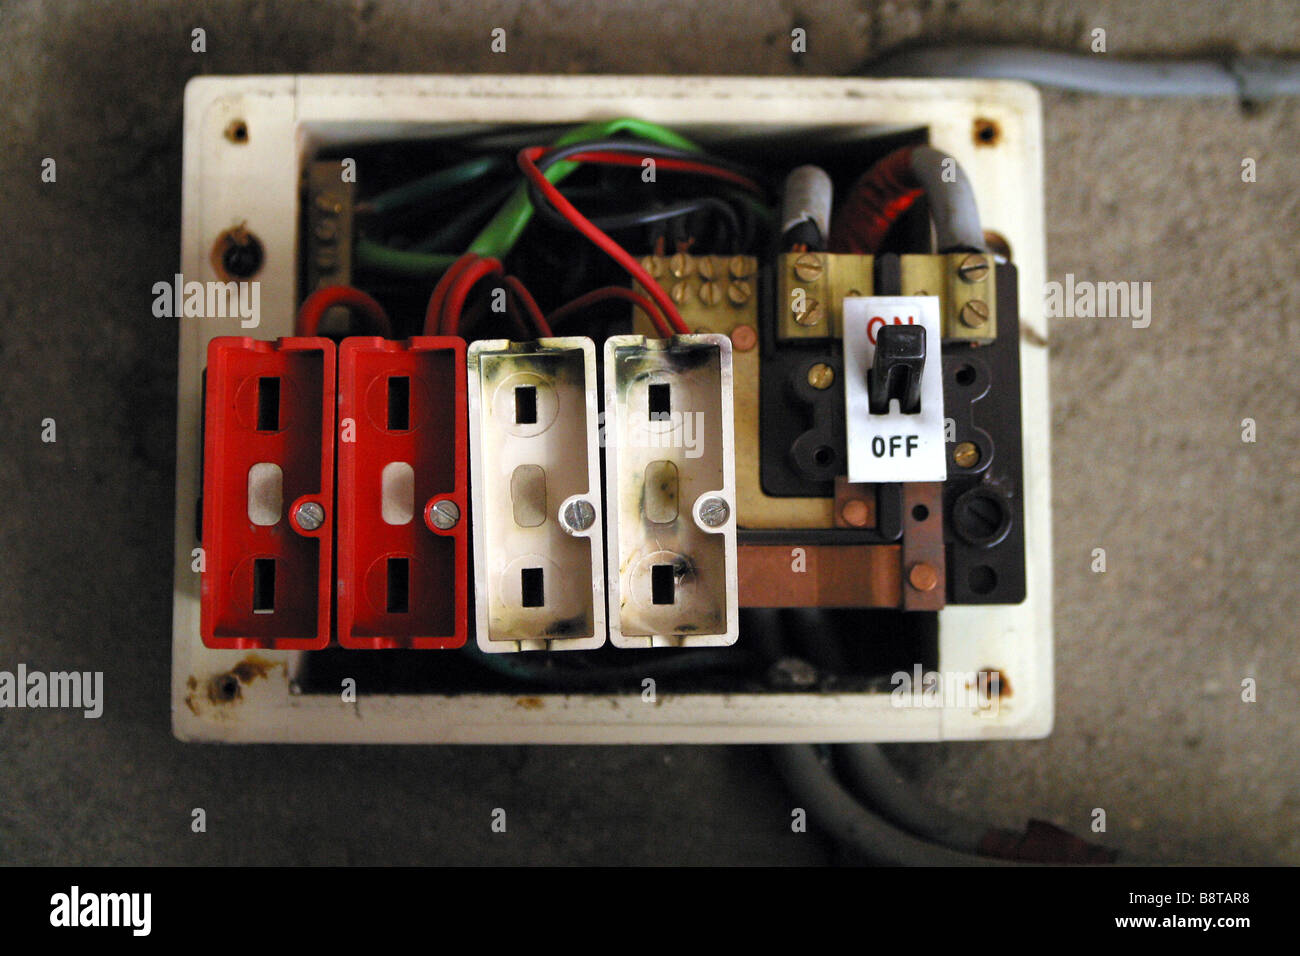 c8.alamy.com/comp/B8TAR8/old-style-consumer-unit-e... Old Fuse Box Guide on